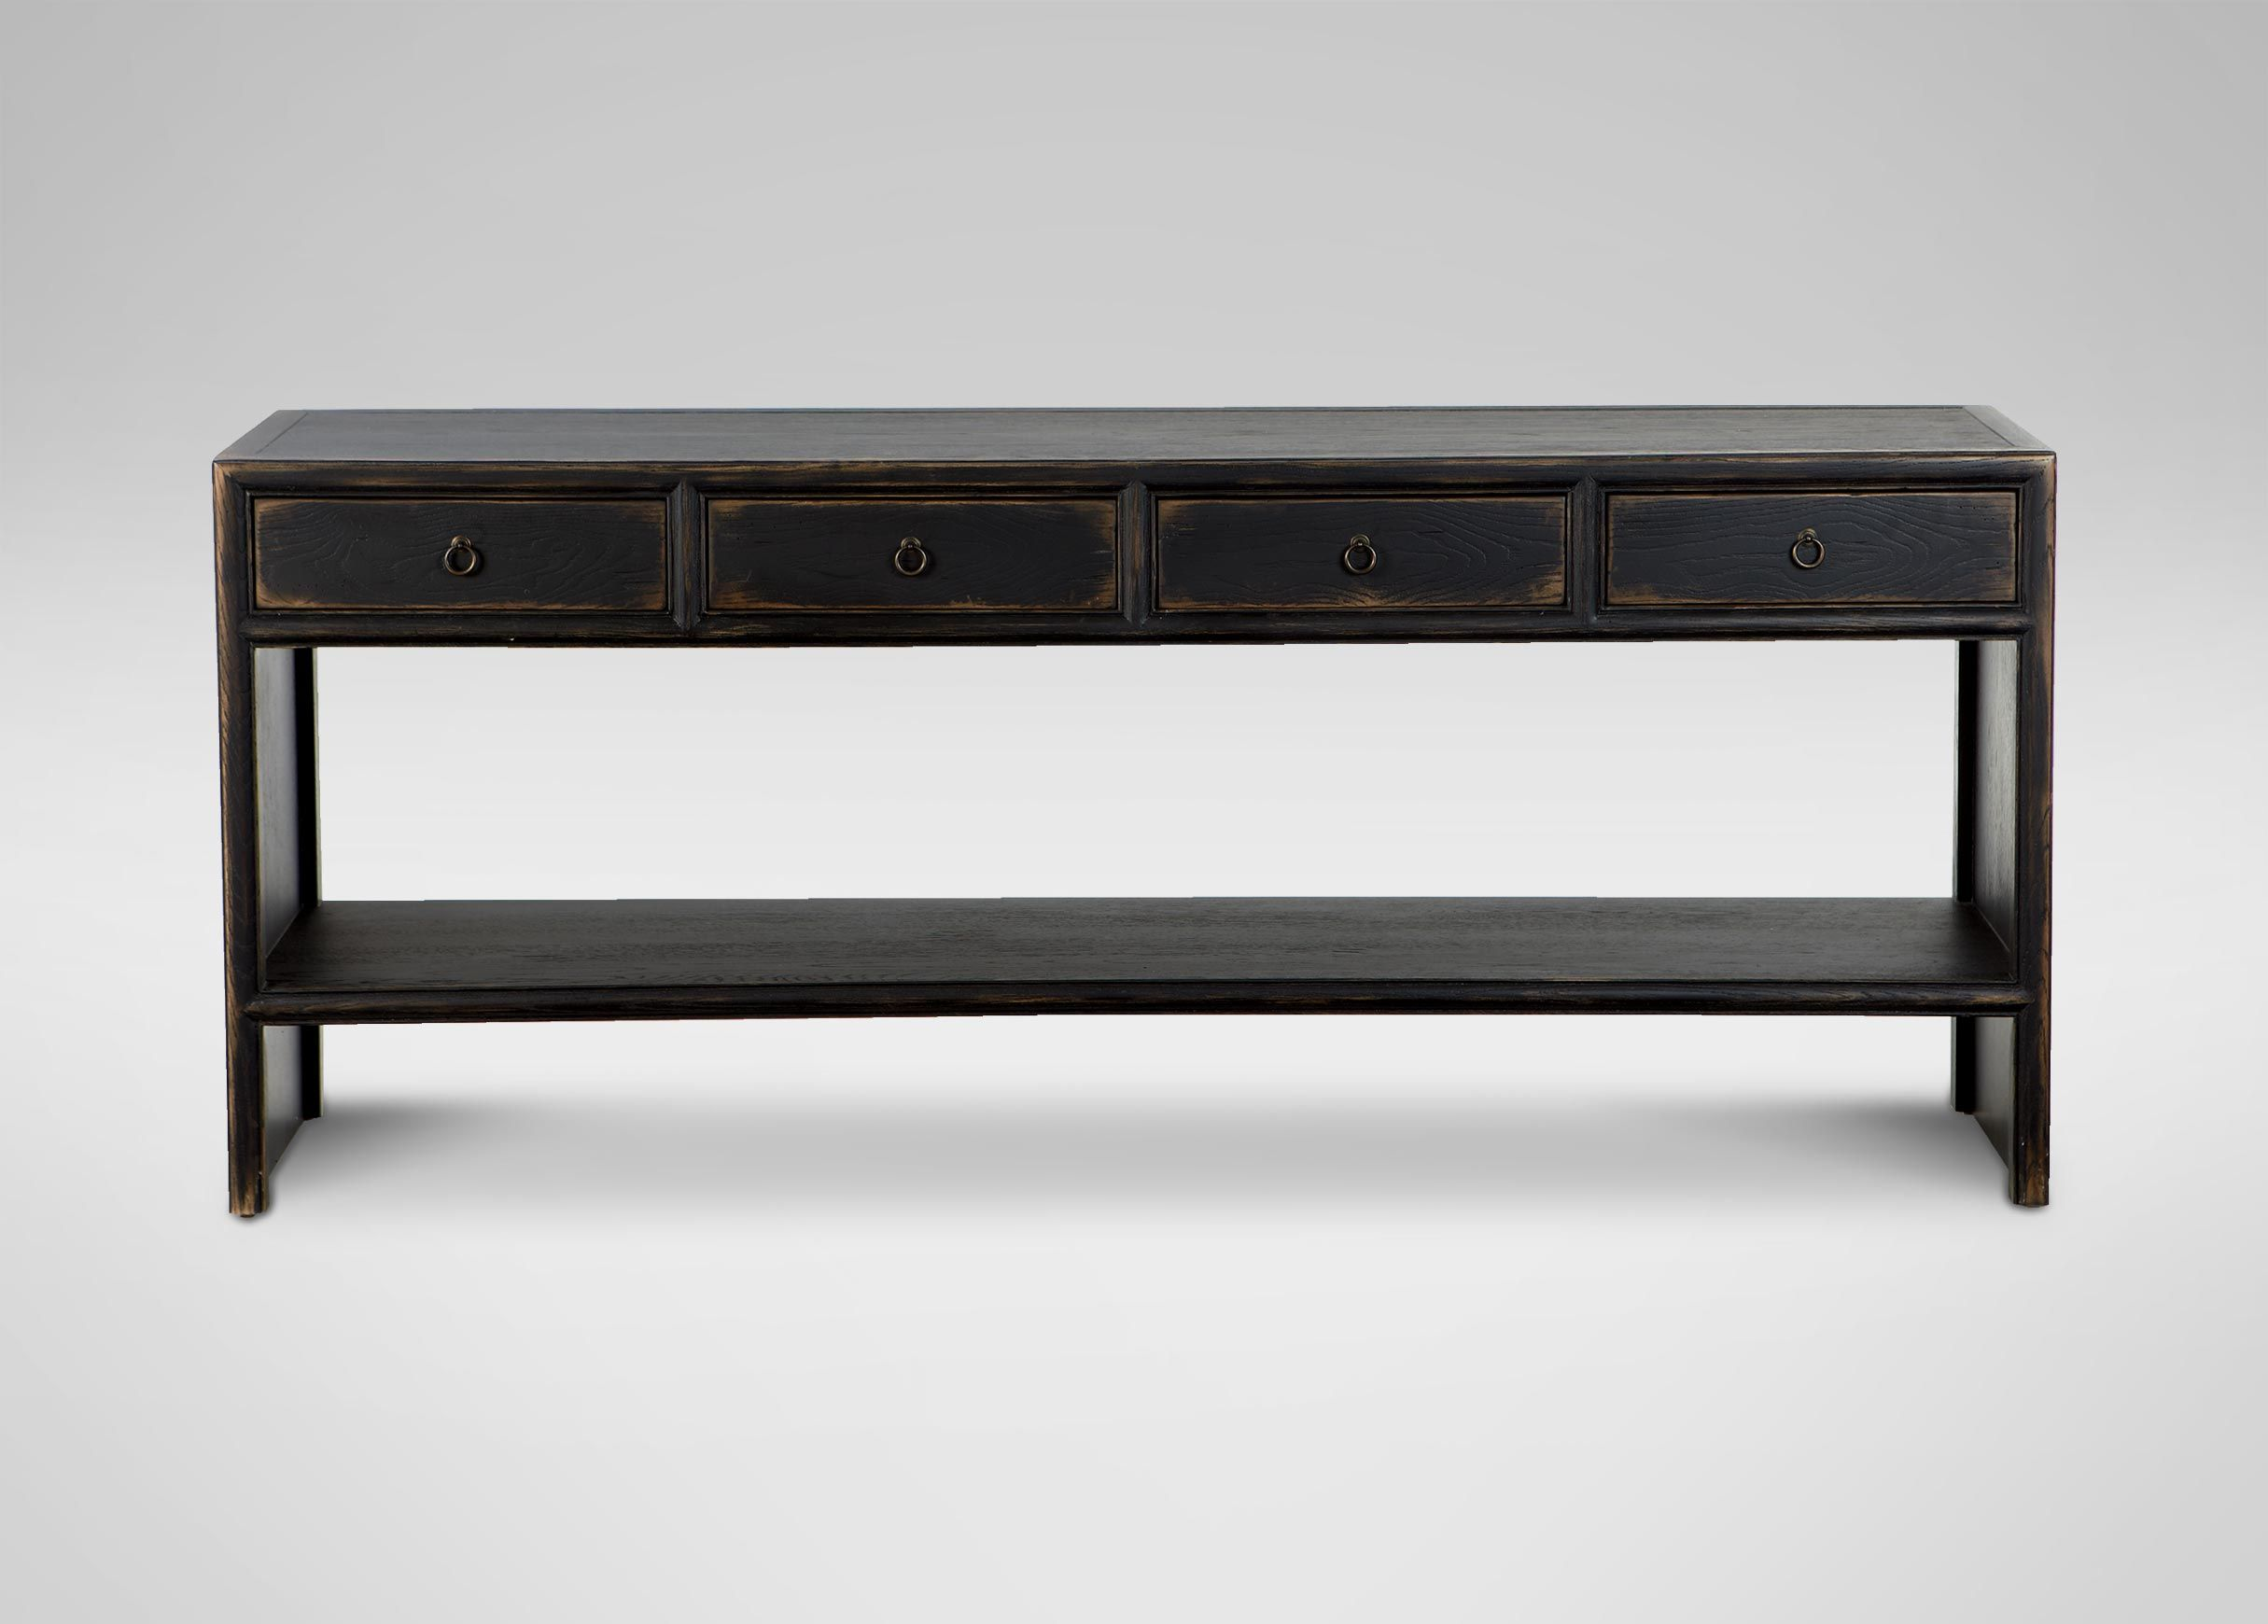 Large shogun console table 72 long 30 high